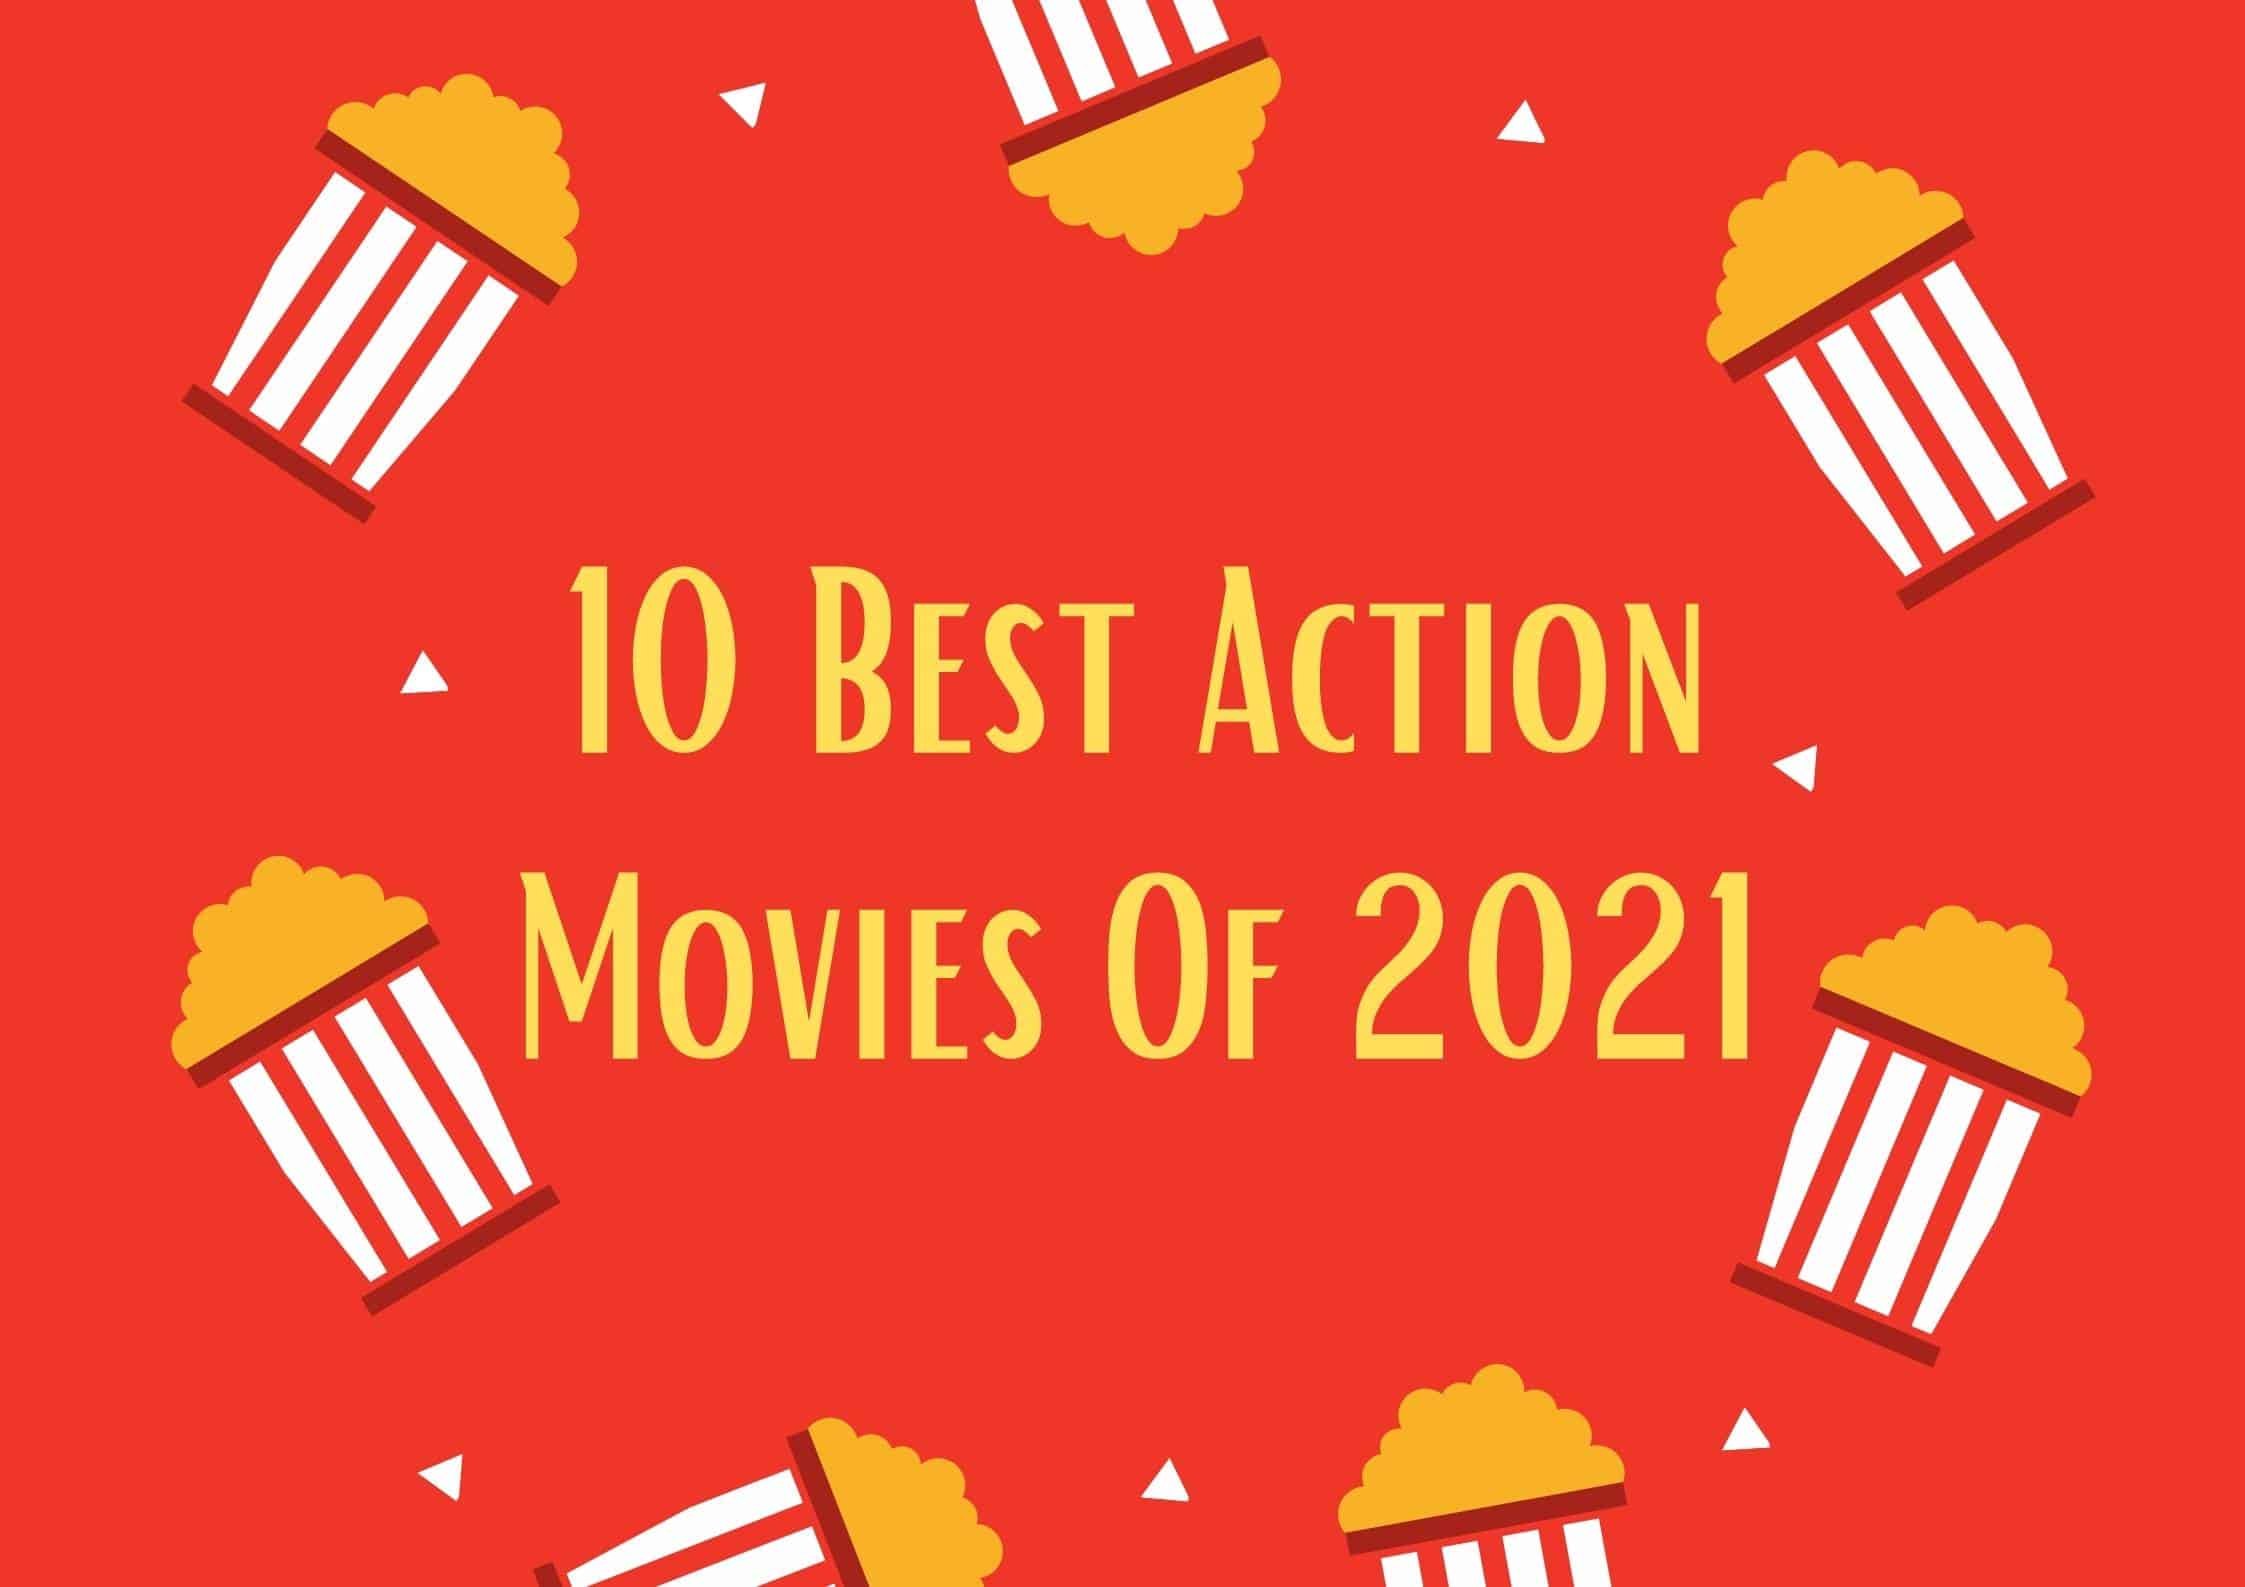 10 action movies